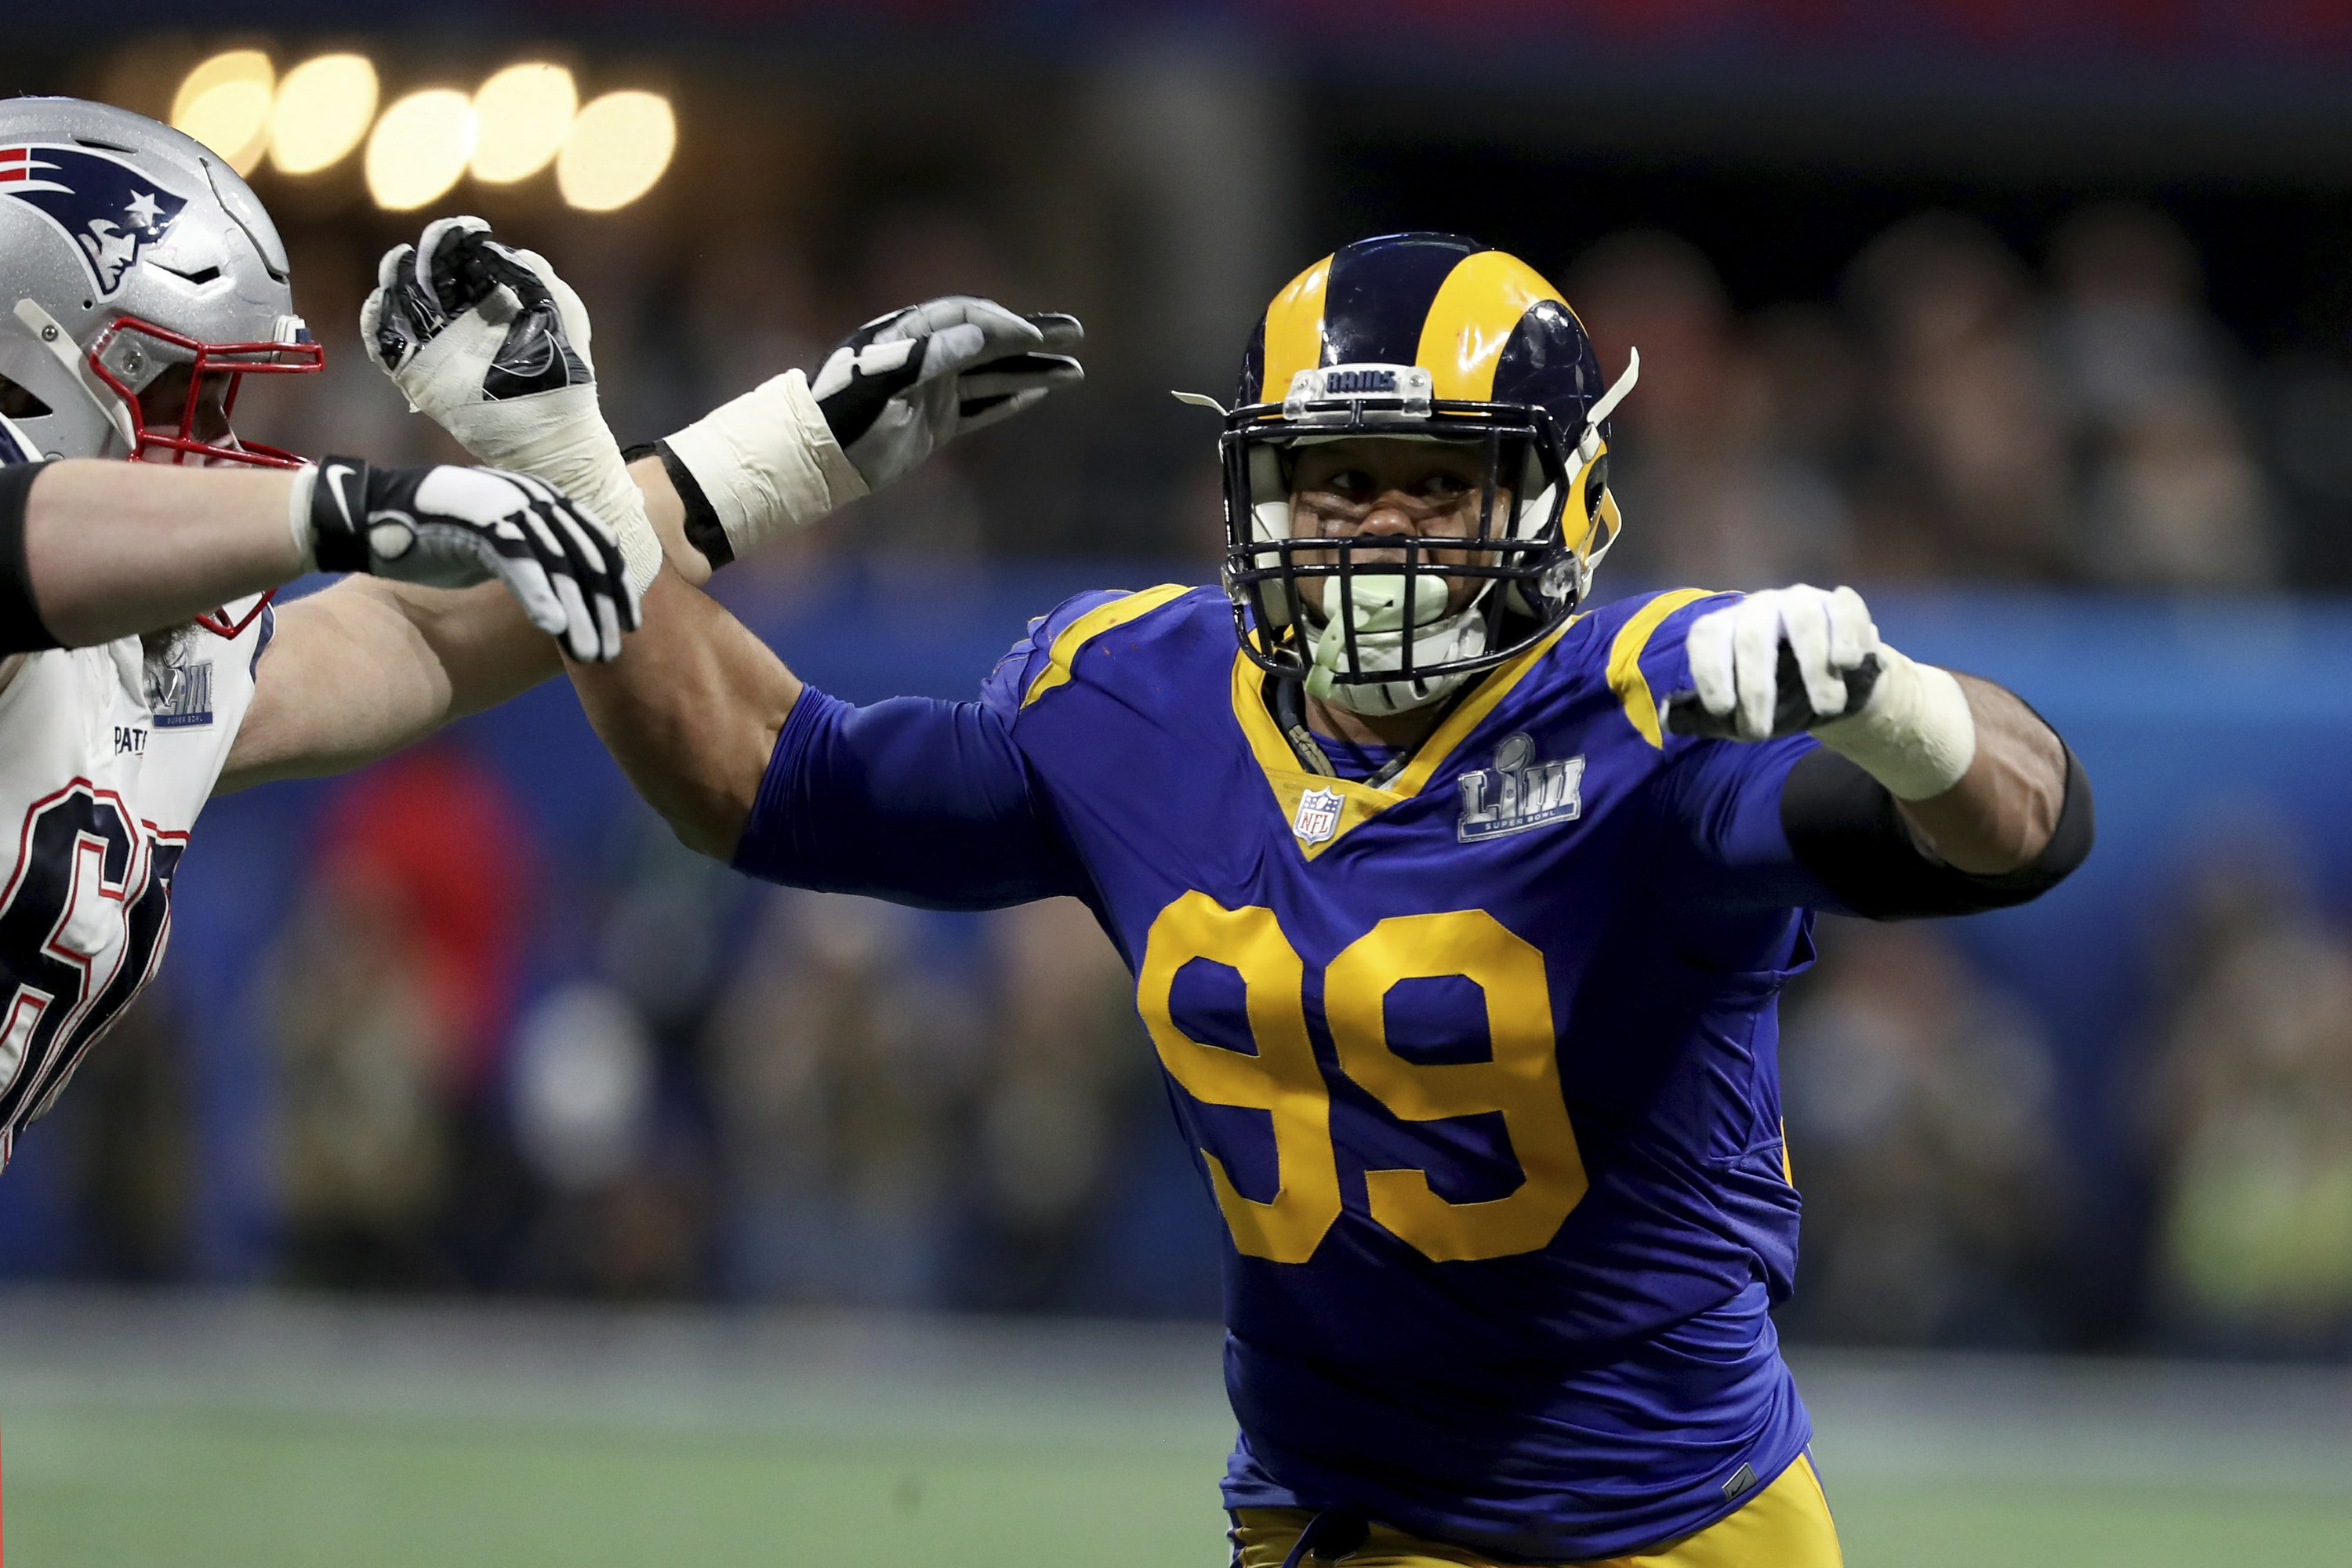 low cost 2a89a 56f92 Staying sharp: Sack artist Donald fueled by Super Bowl loss